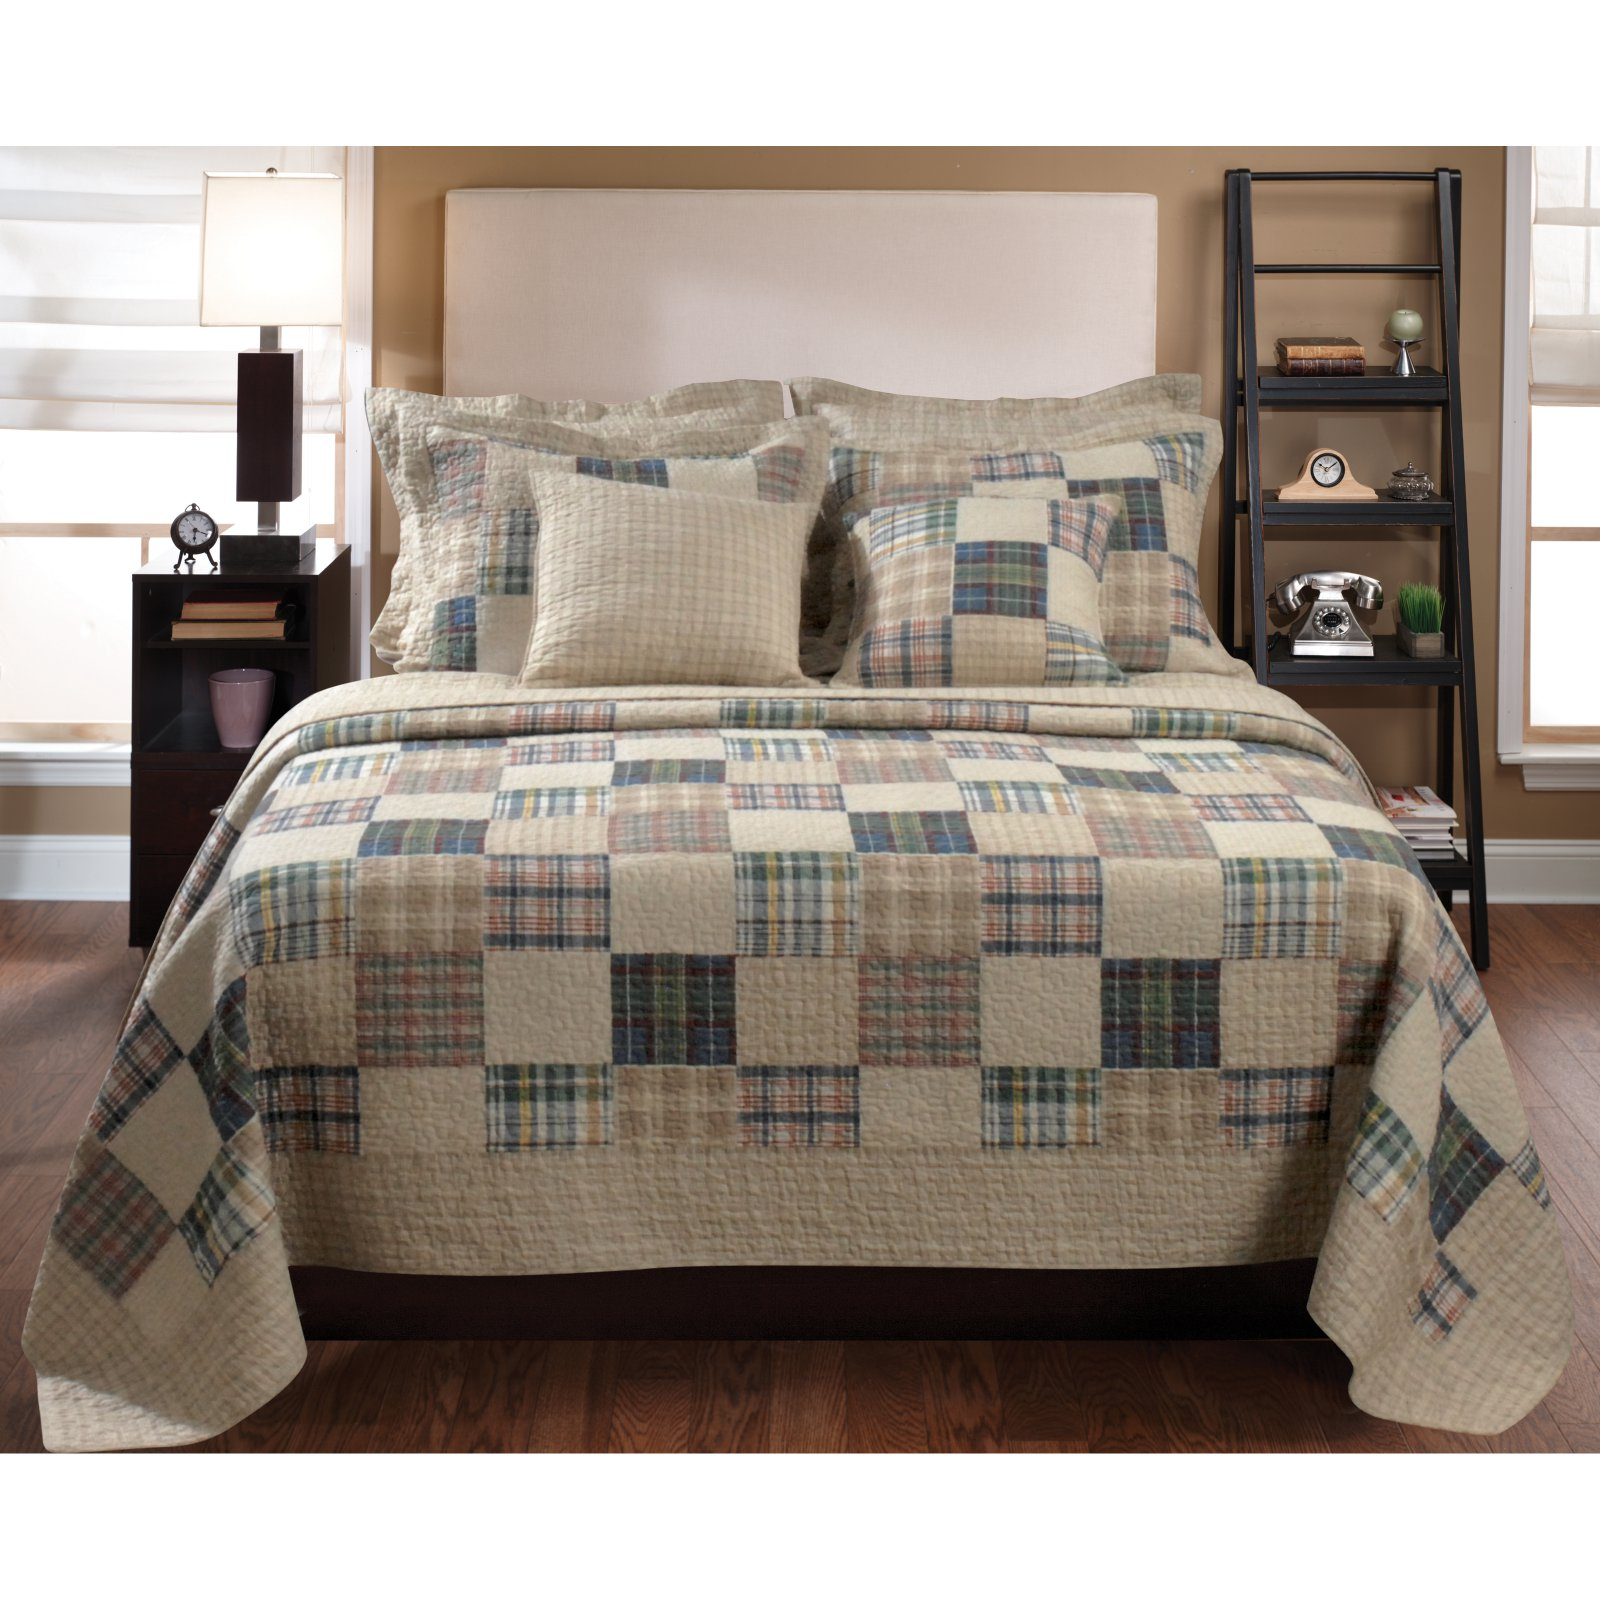 Greenland Home Fashions Oxford Quilt Set by Greenland Home Fashions